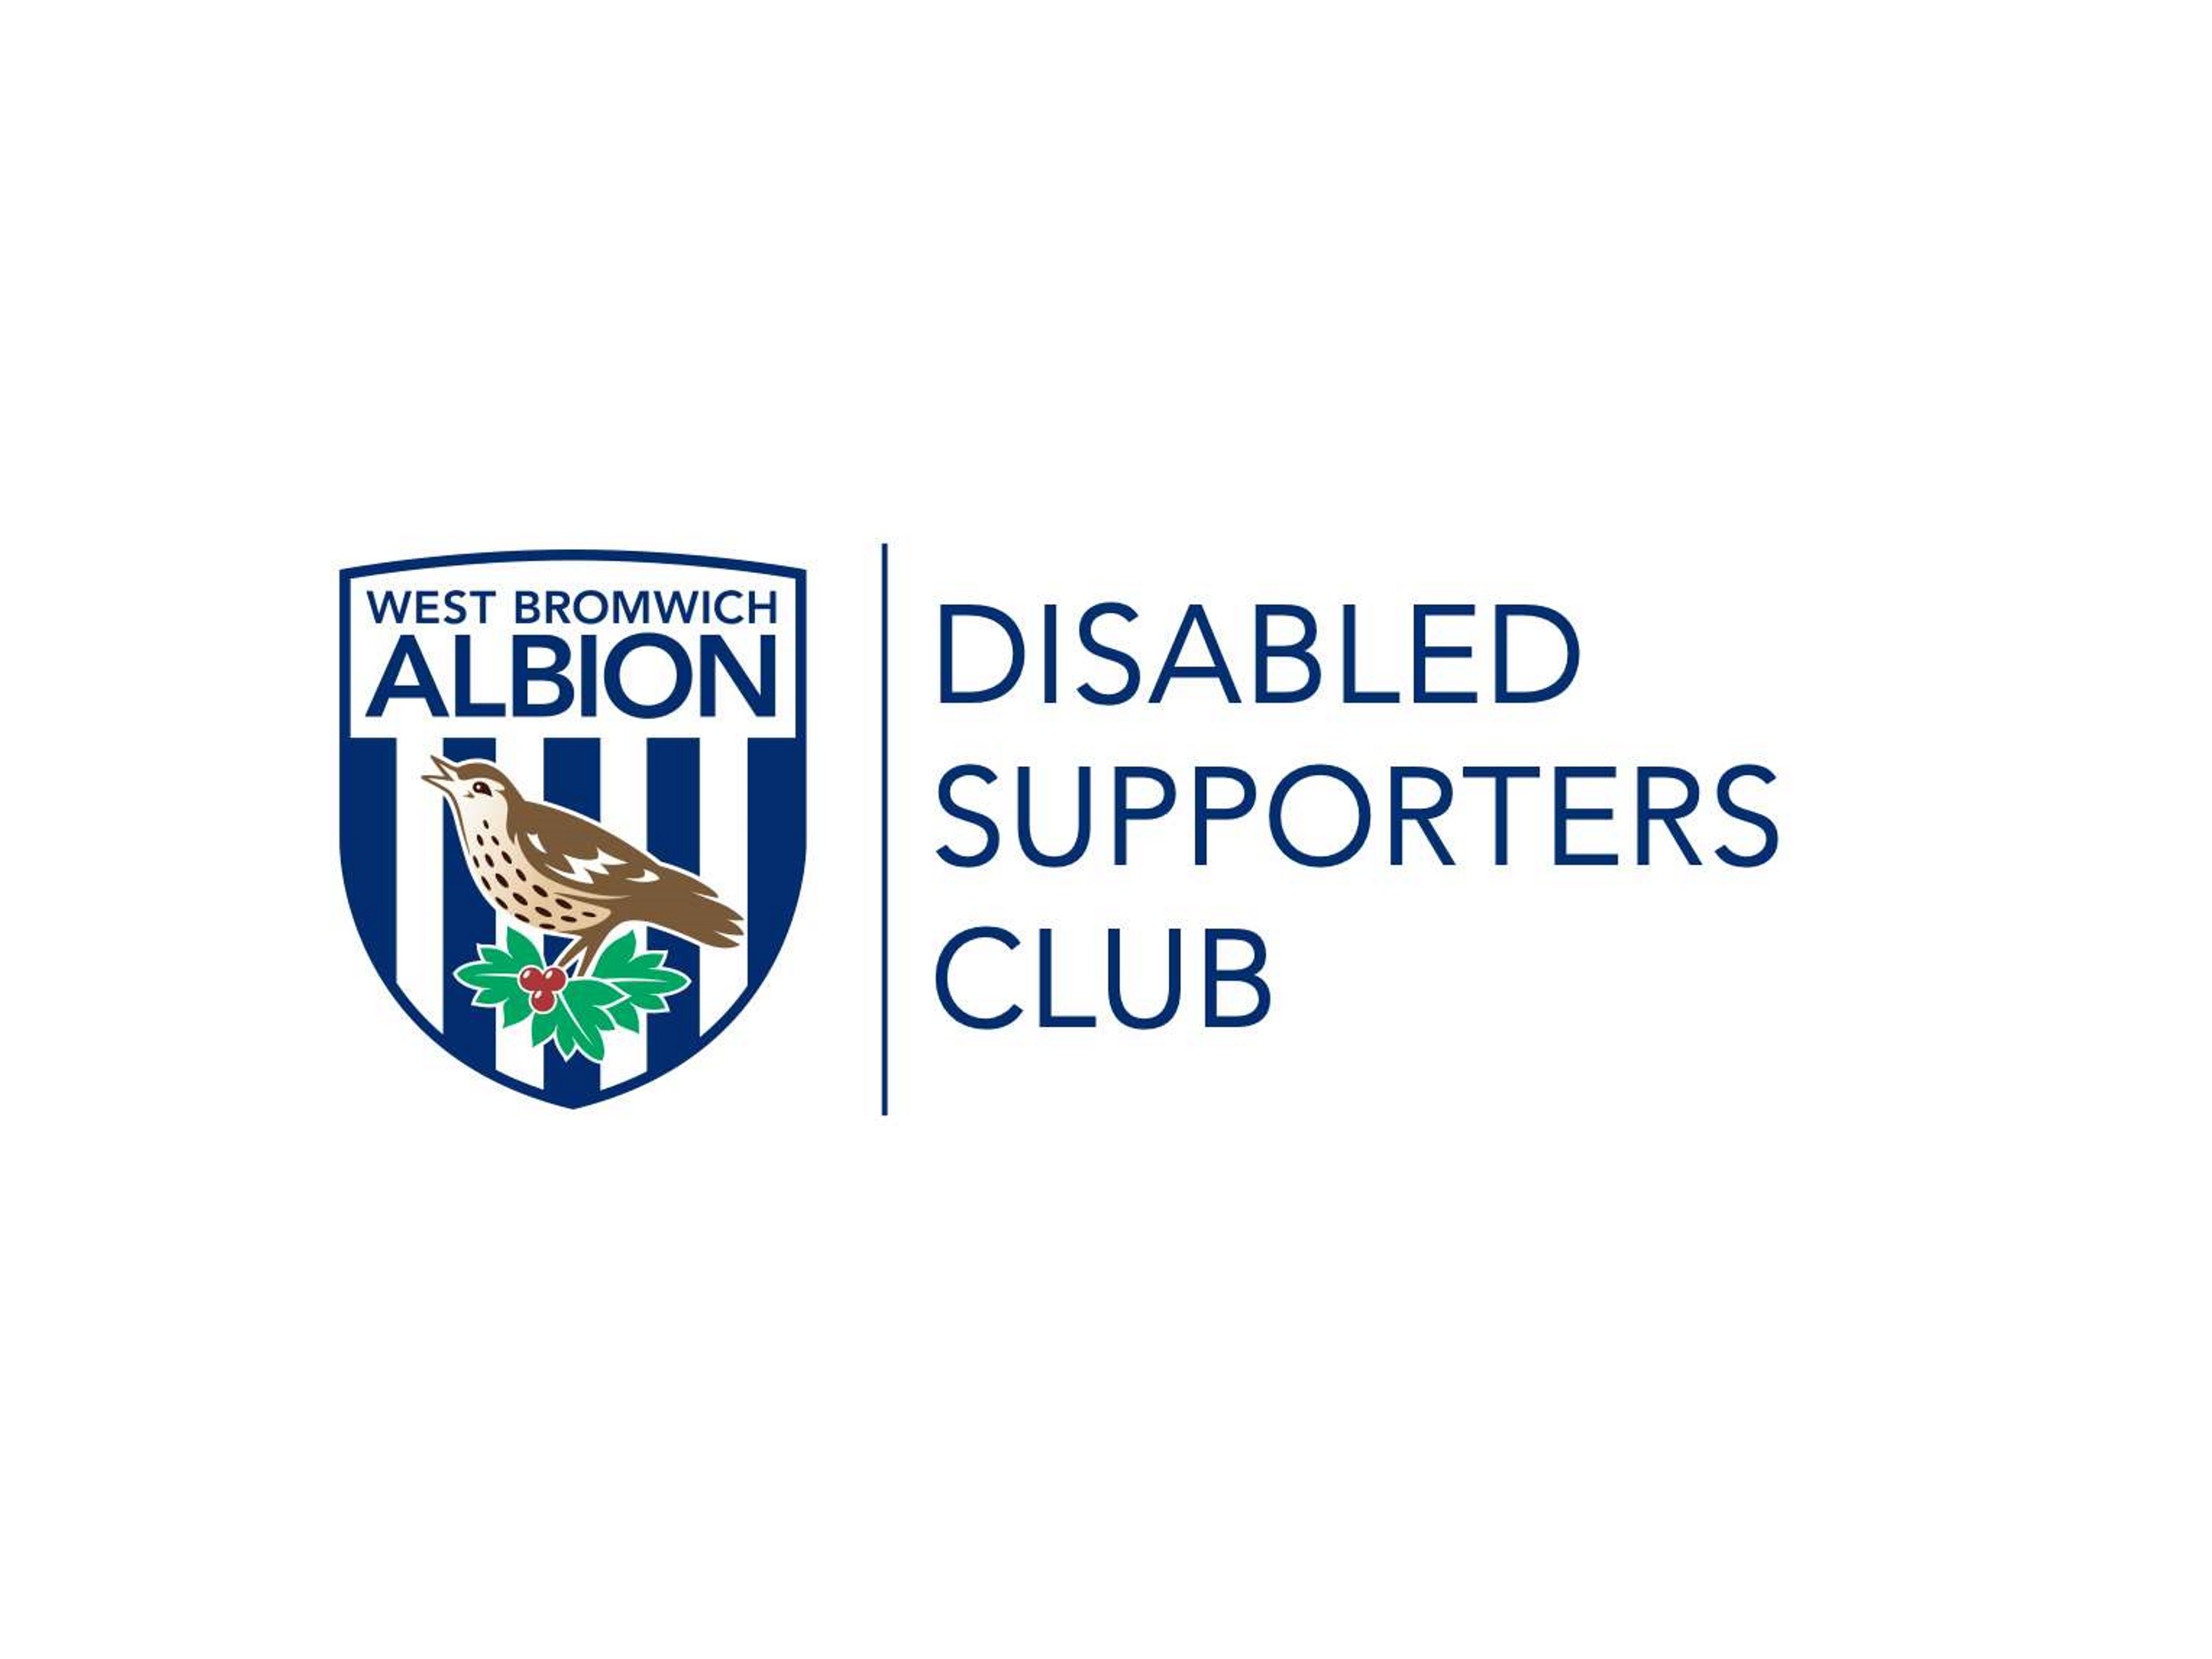 WBA Disabled Supporters Club